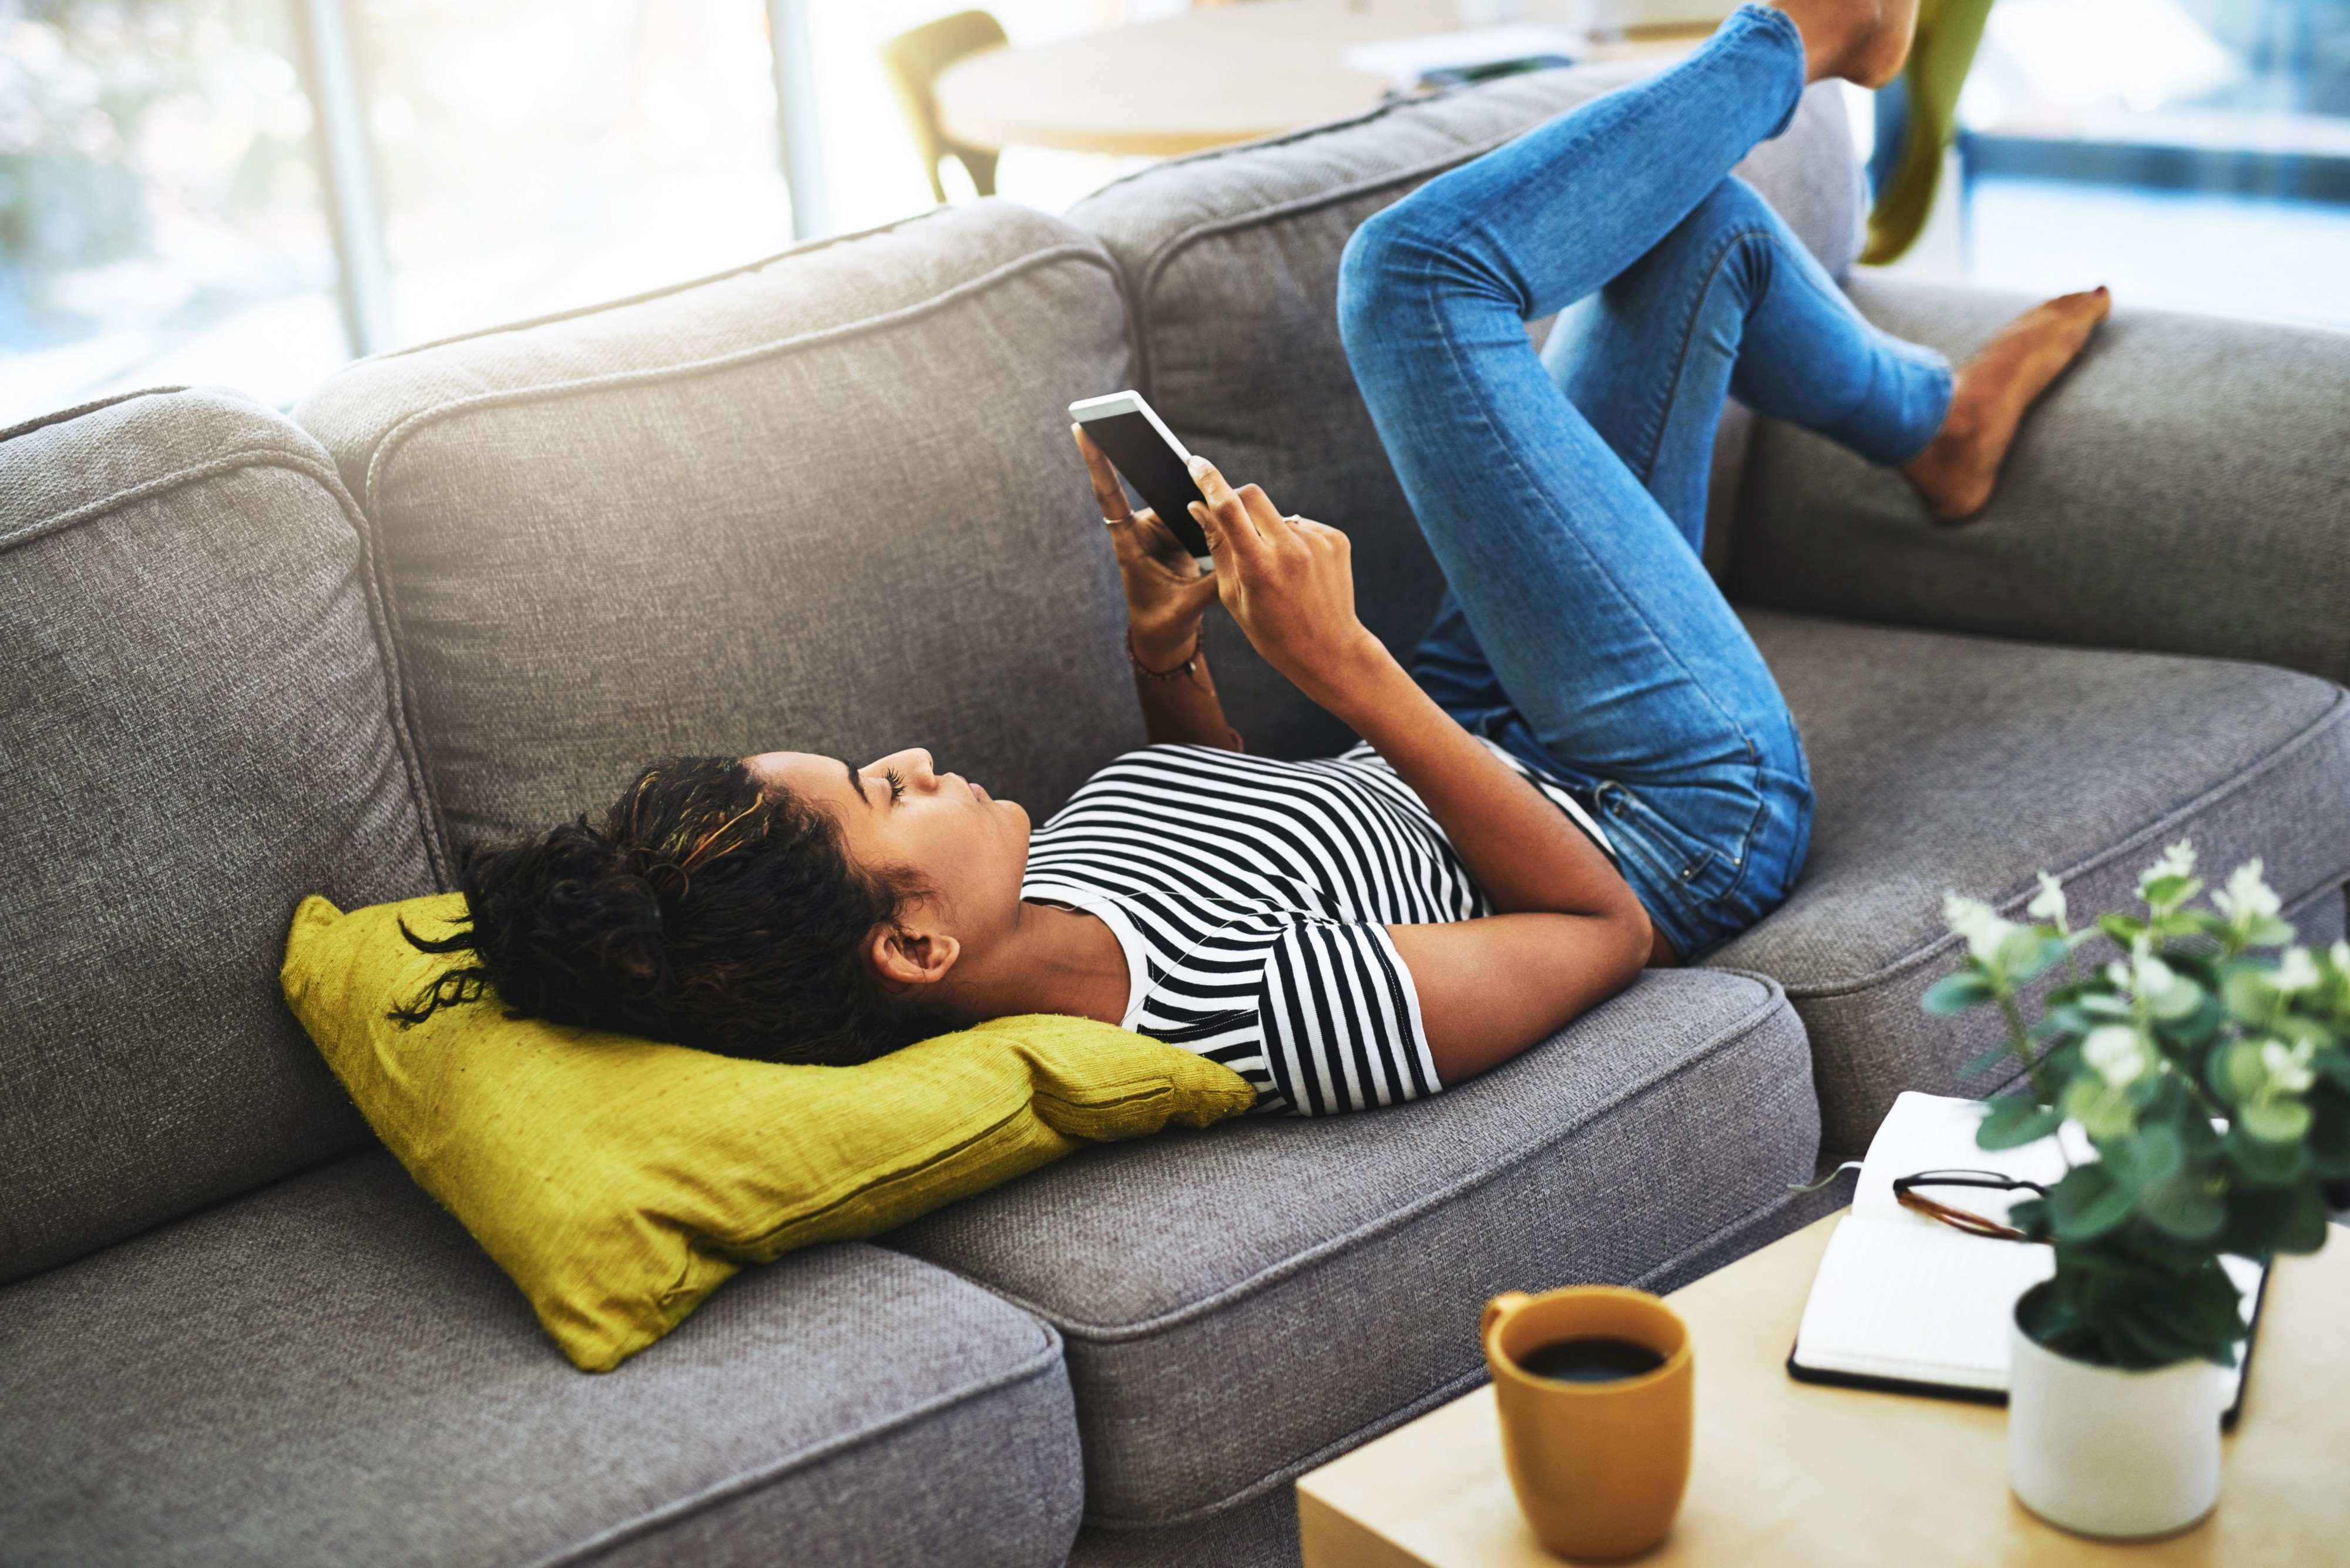 A woman scrolling down her phone while lying down on her couch.